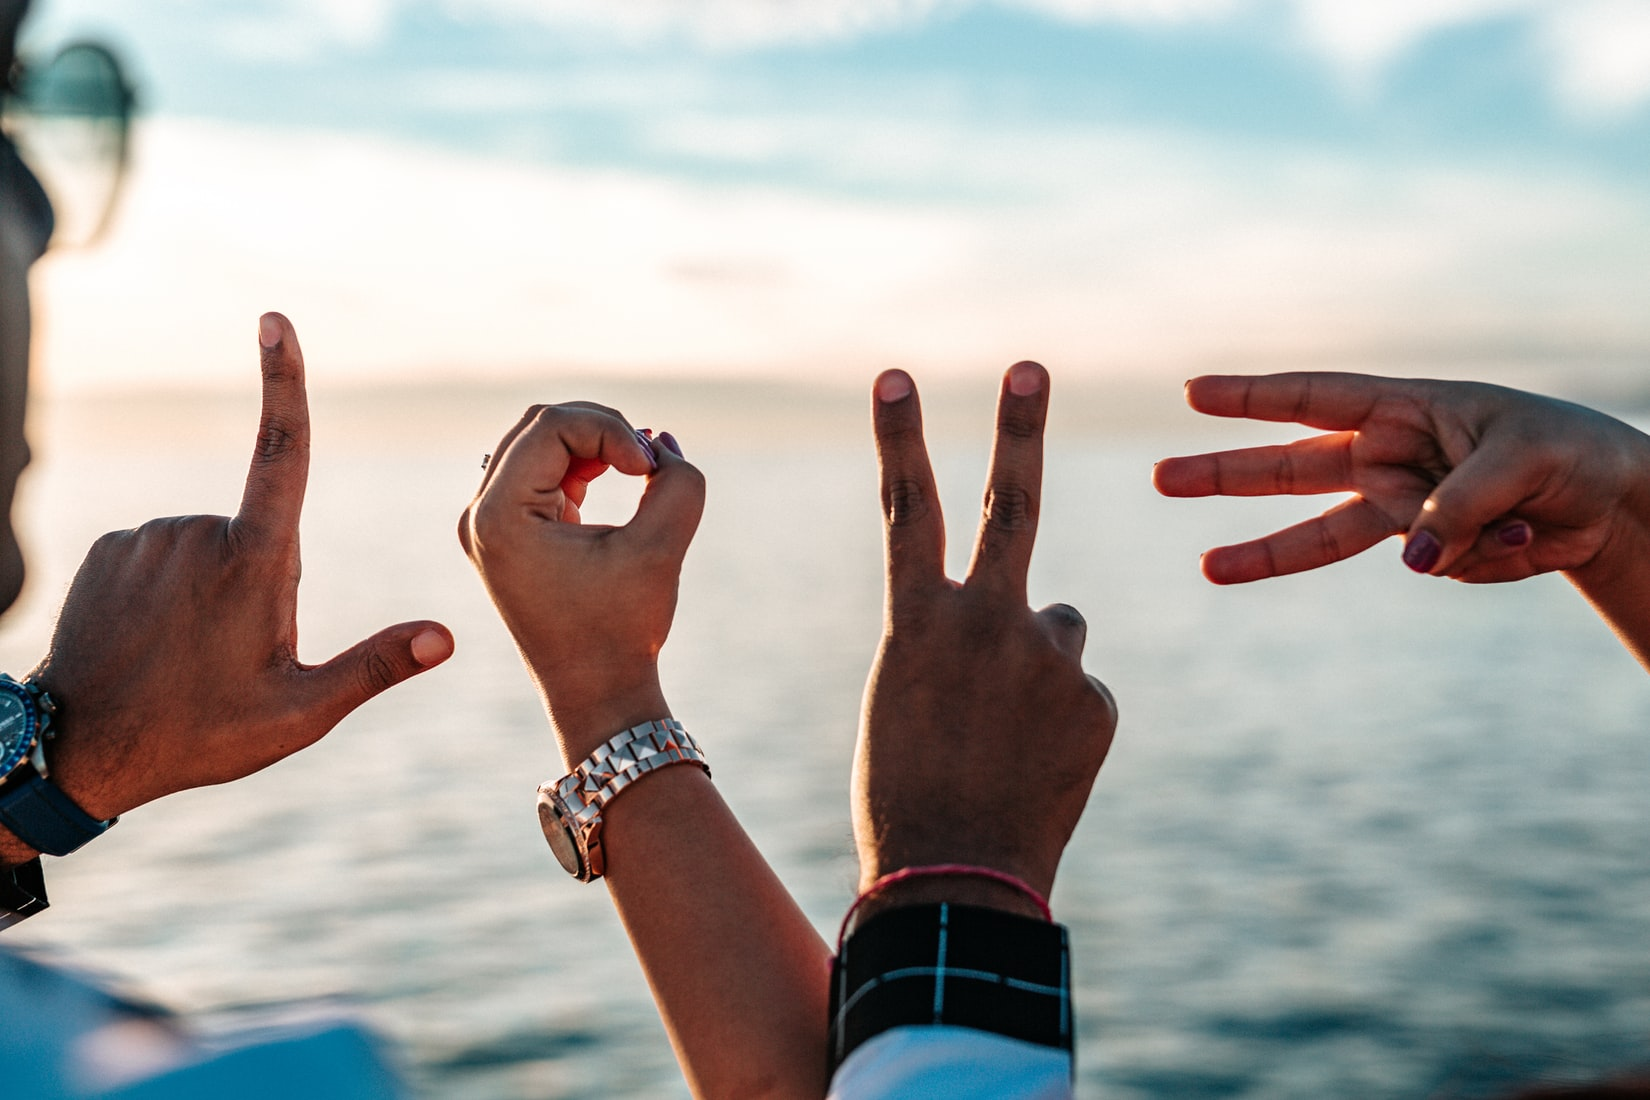 Two persons forming love fingers in front of body of water